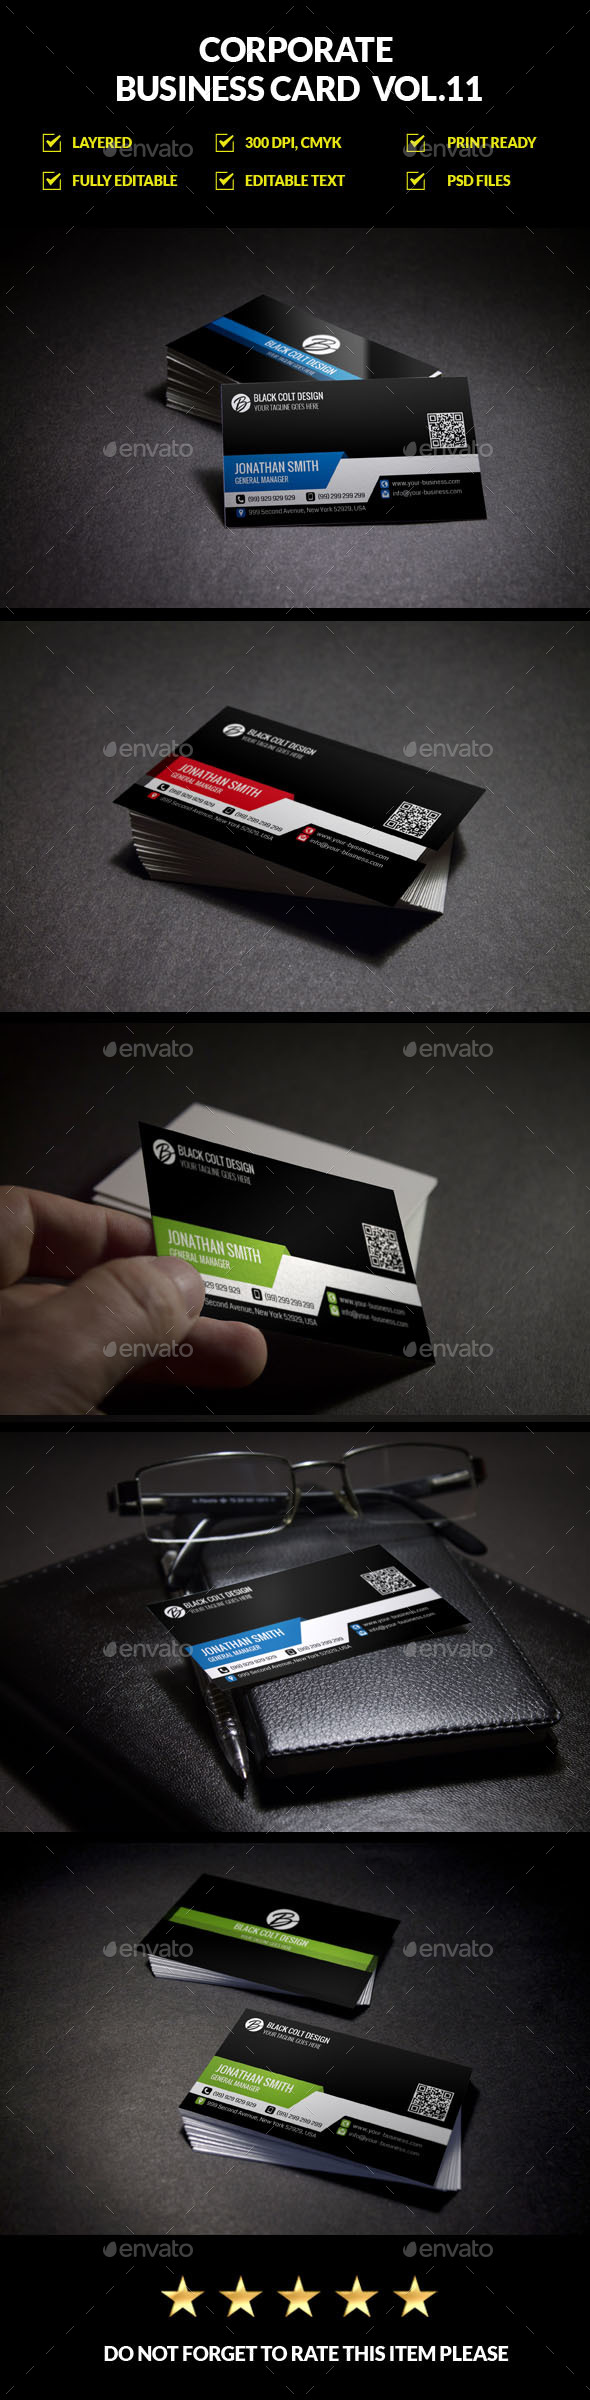 Corporate Business Card Vol.11 - Corporate Business Cards